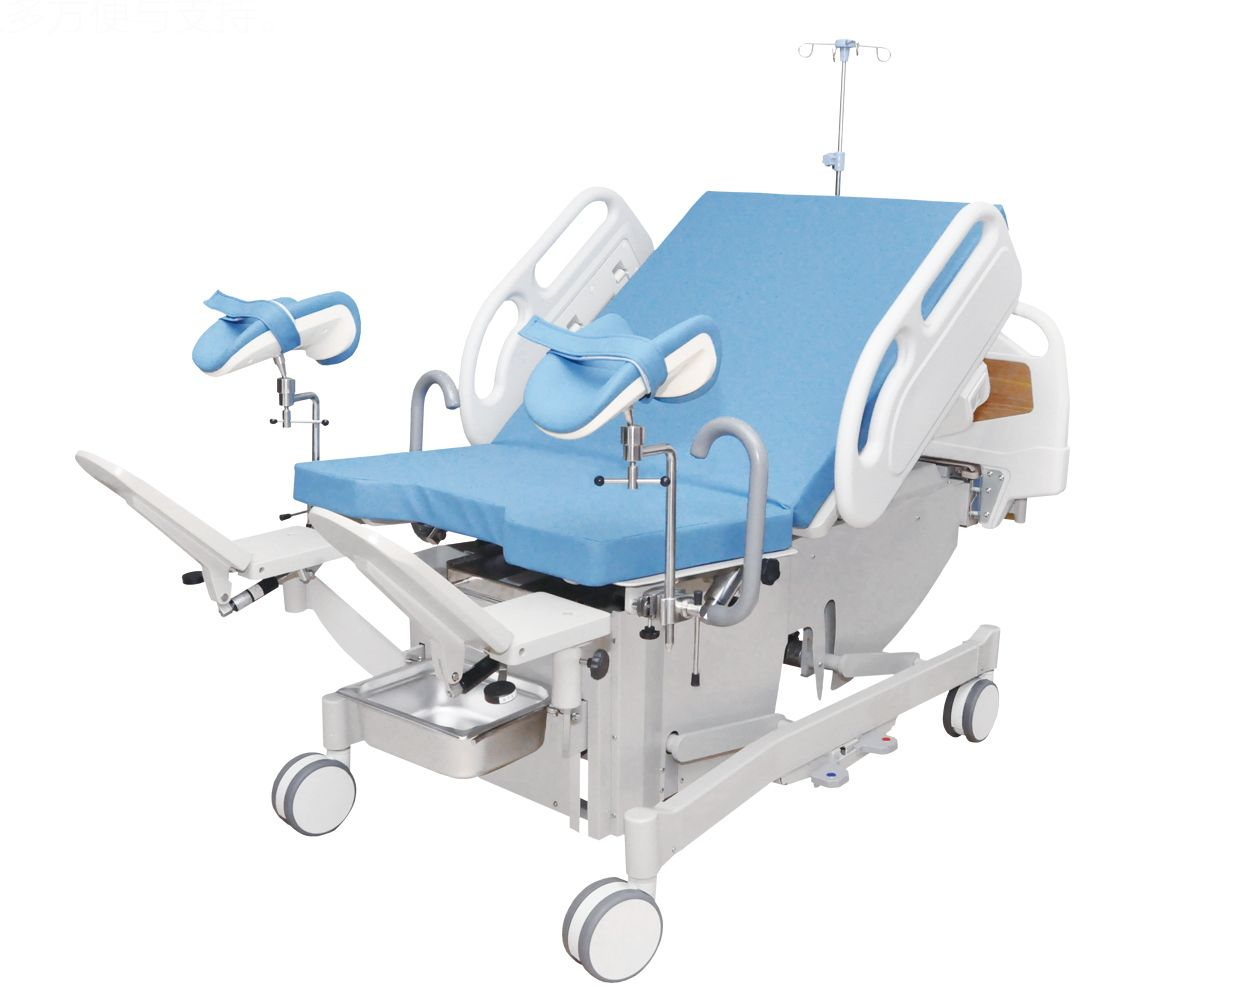 RC-FS.I The new operating table is used for gynecological surgery, surgical abortion and gynecological examination